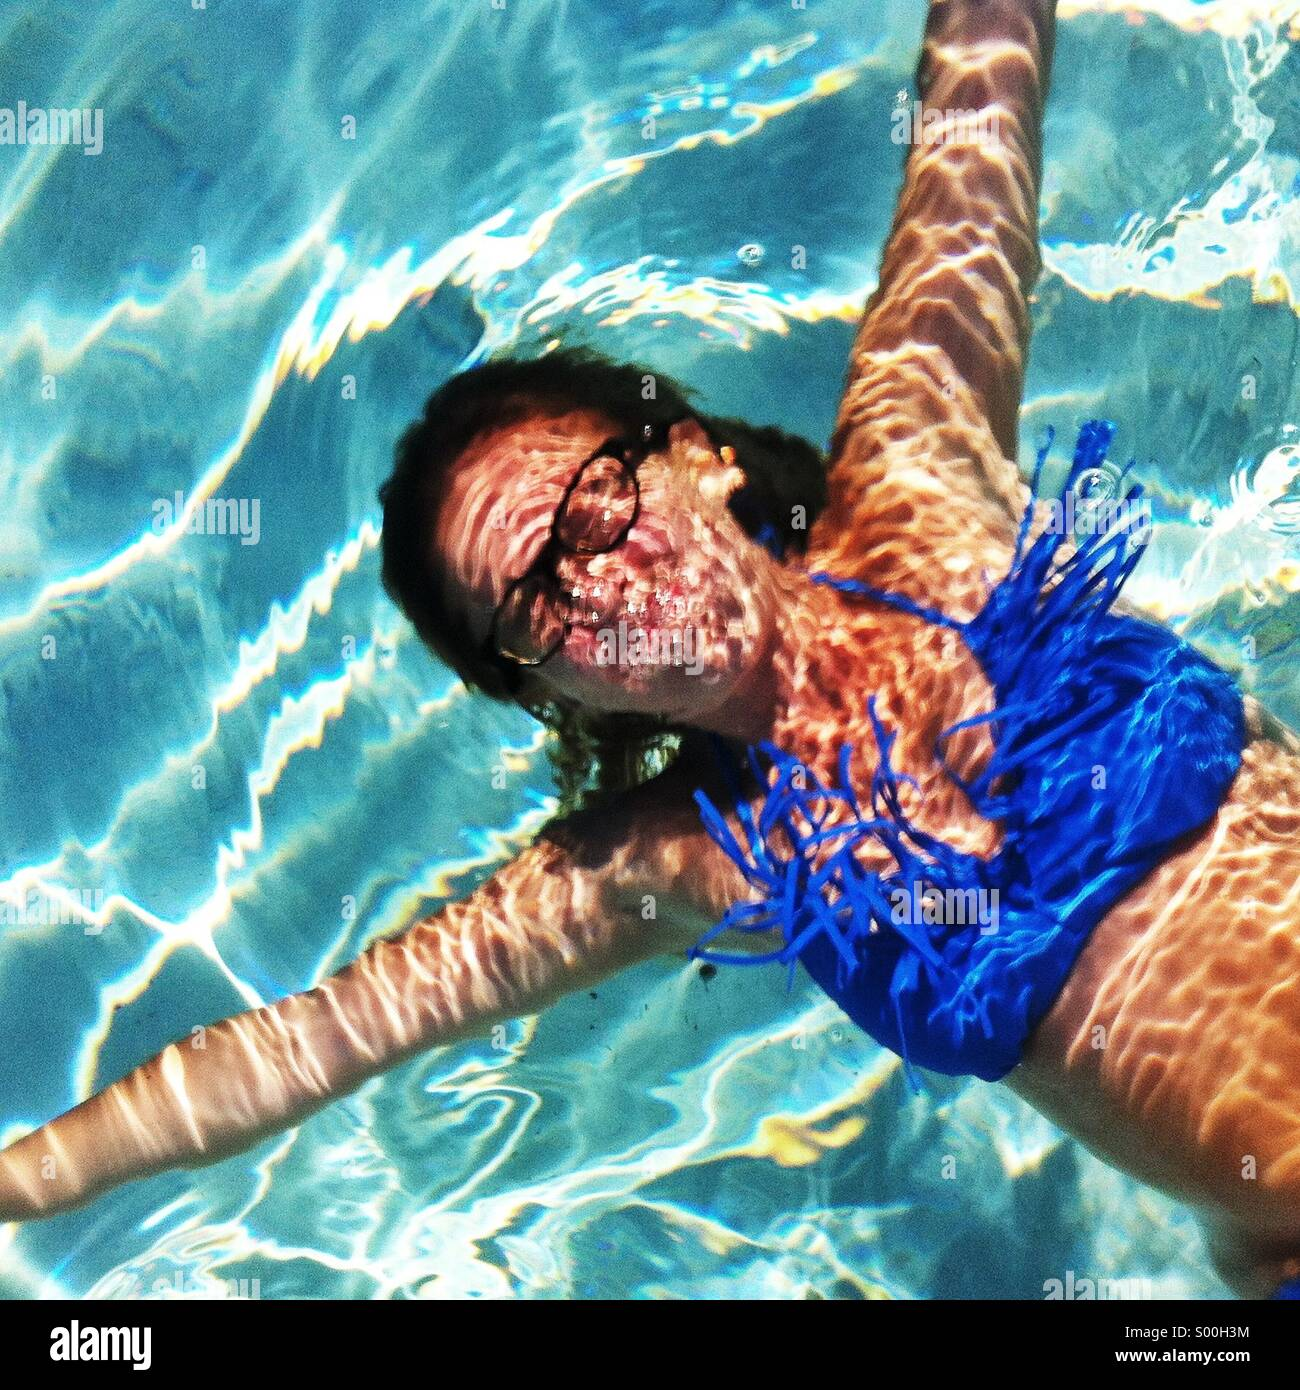 Woman with glasses underwater in pool - Stock Image